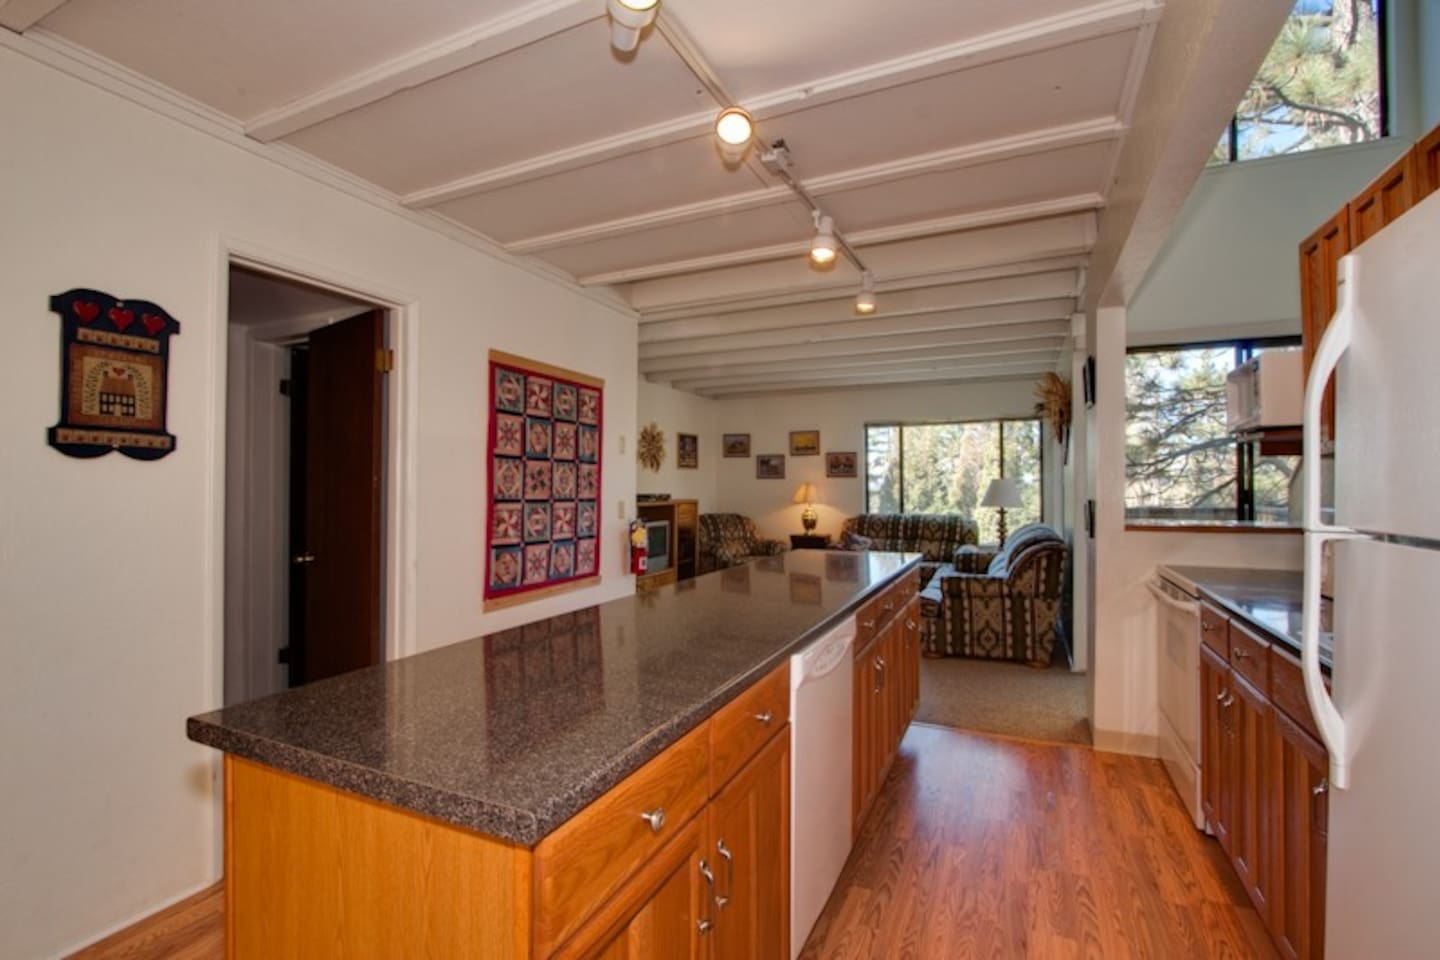 The kitchen and living room.